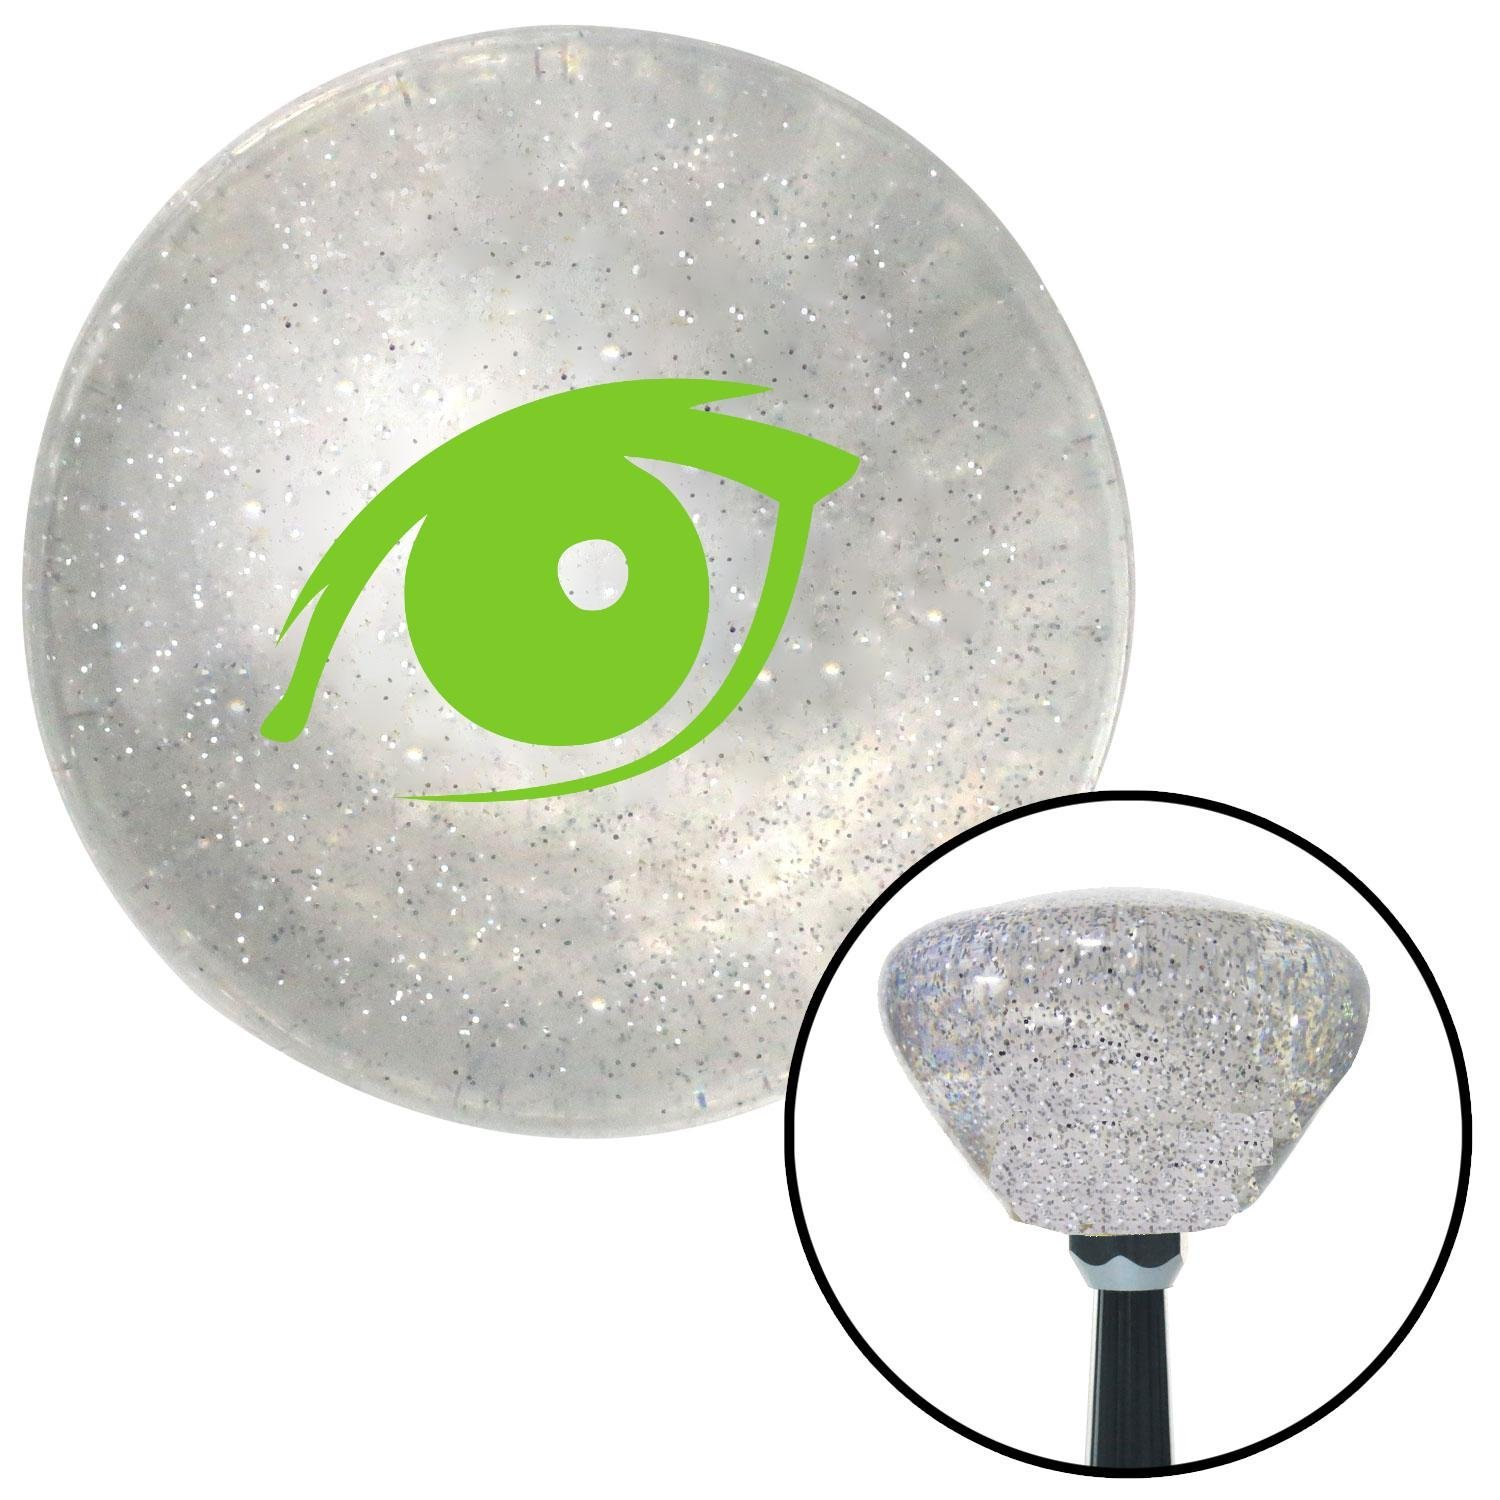 American Shifter 160617 Clear Retro Metal Flake Shift Knob with M16 x 1.5 Insert Green One Eye